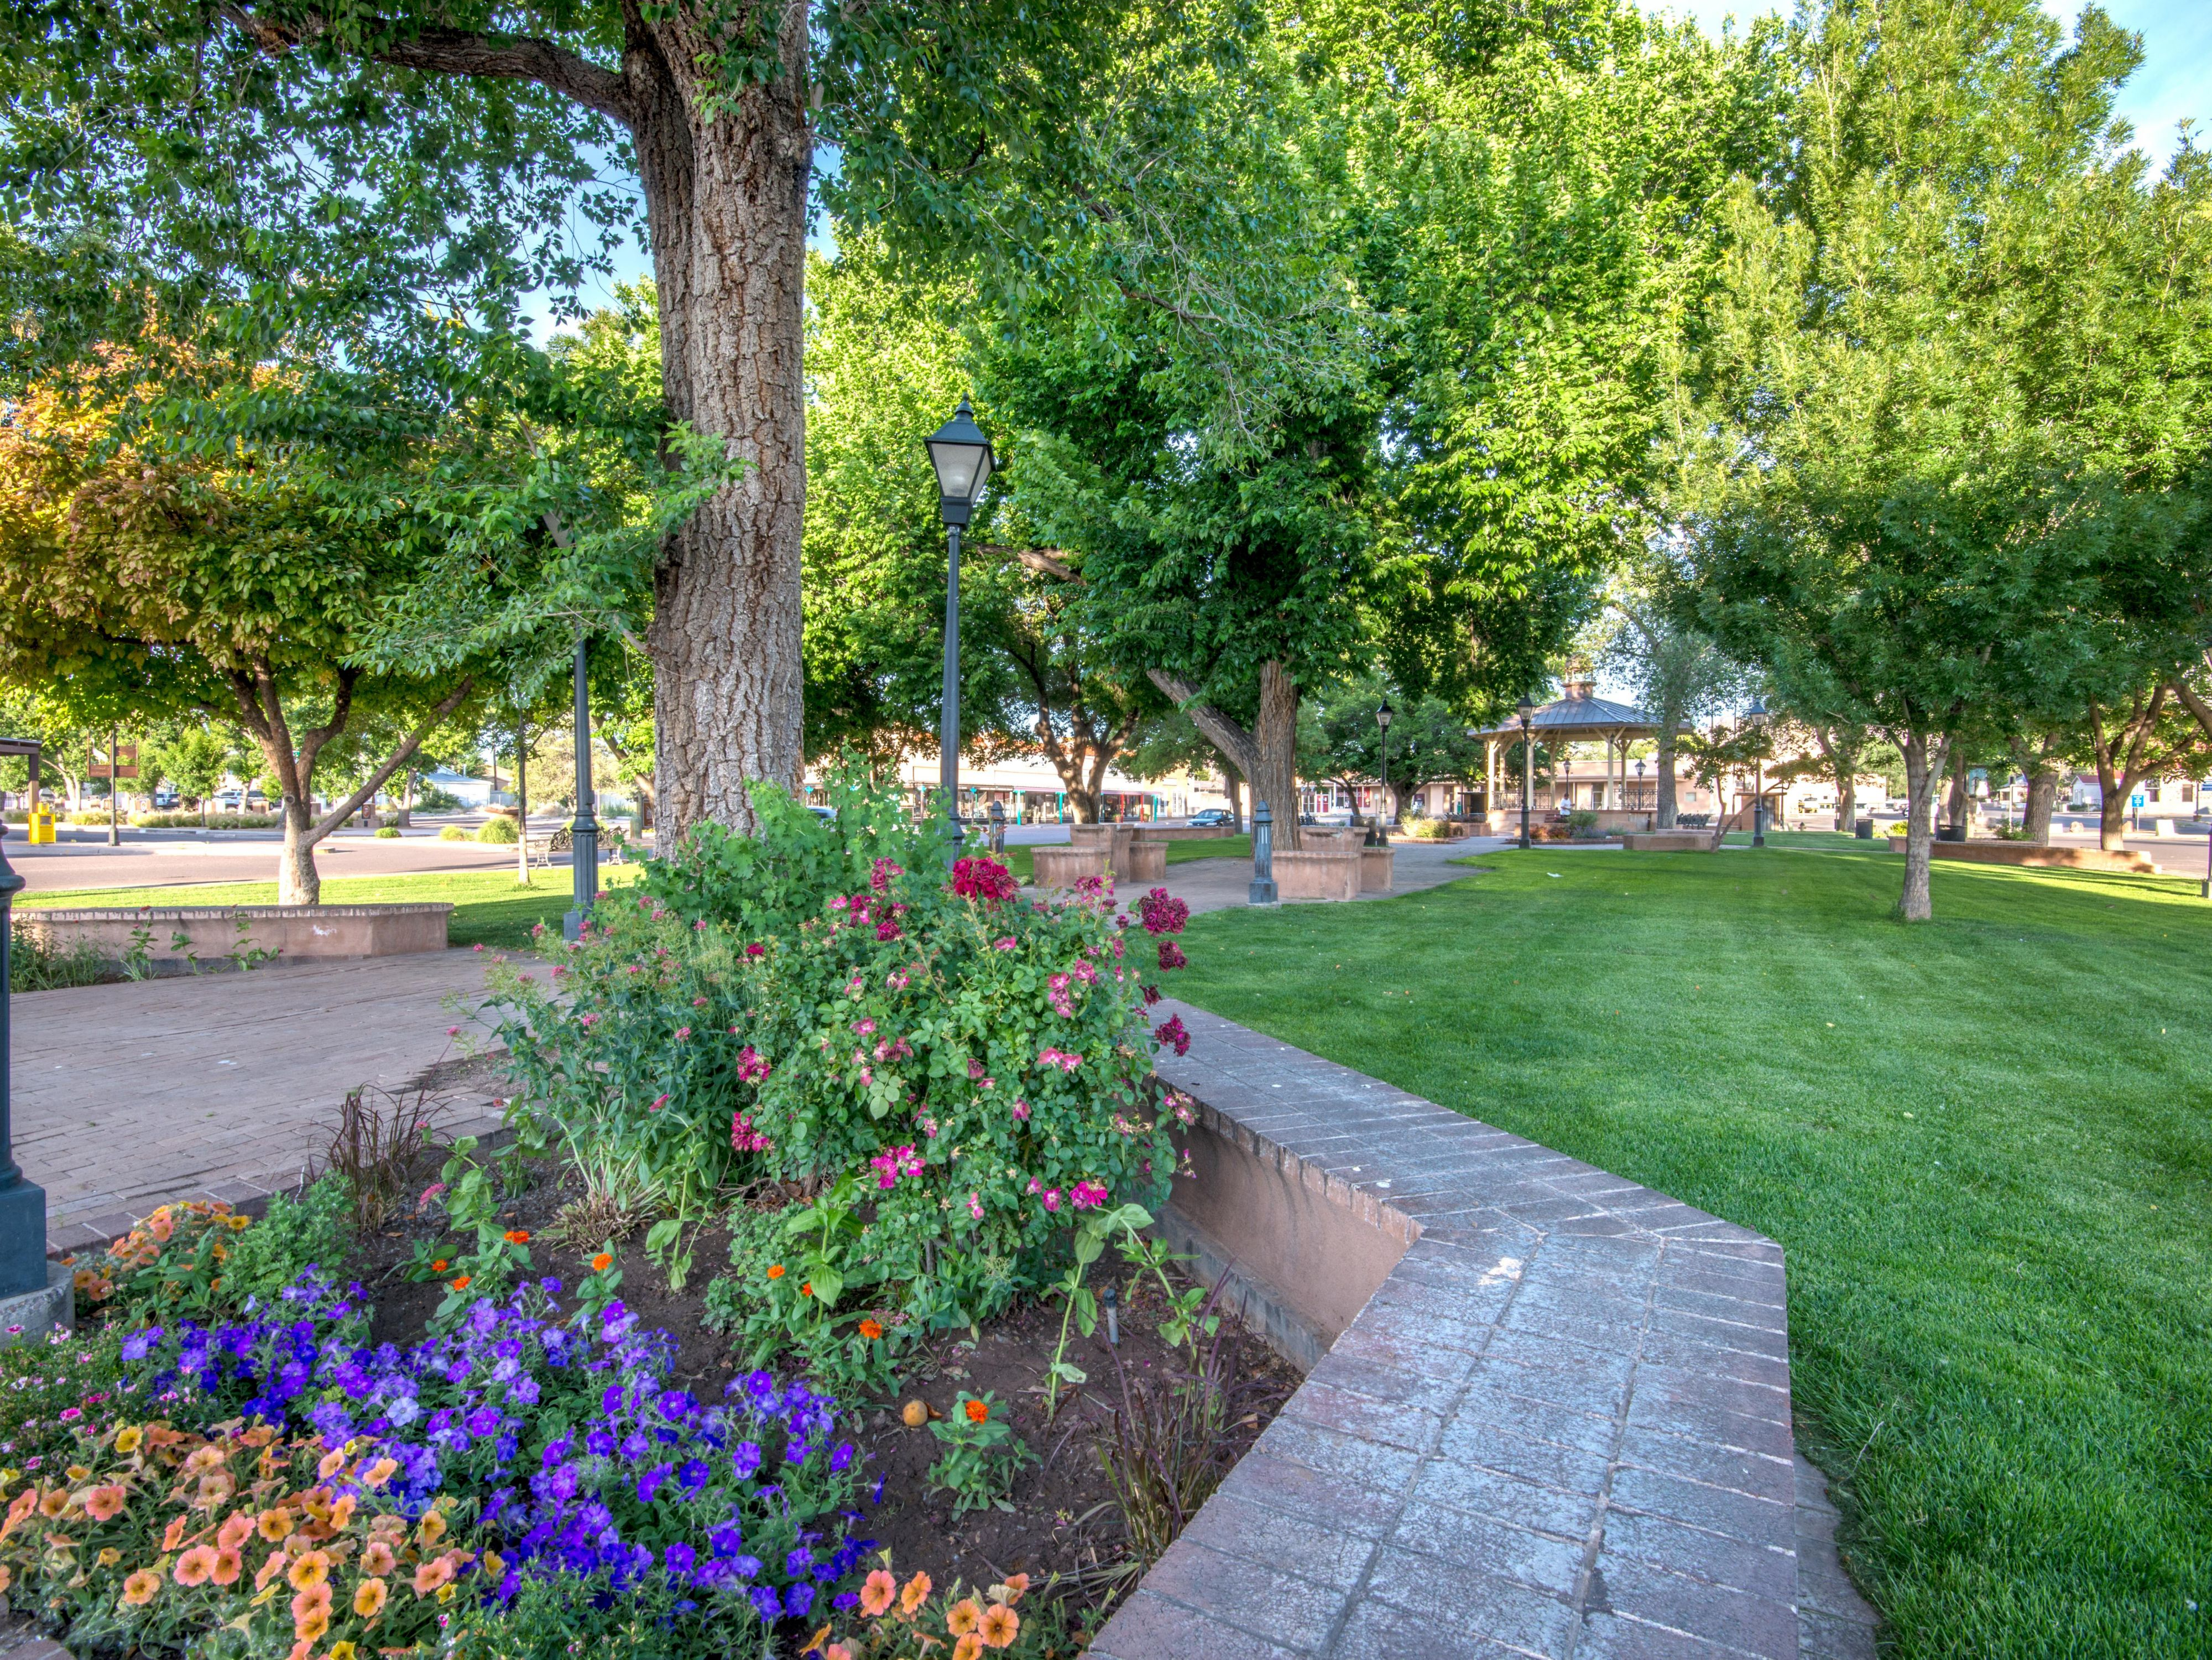 Our beautiful Socorro Plaza park!